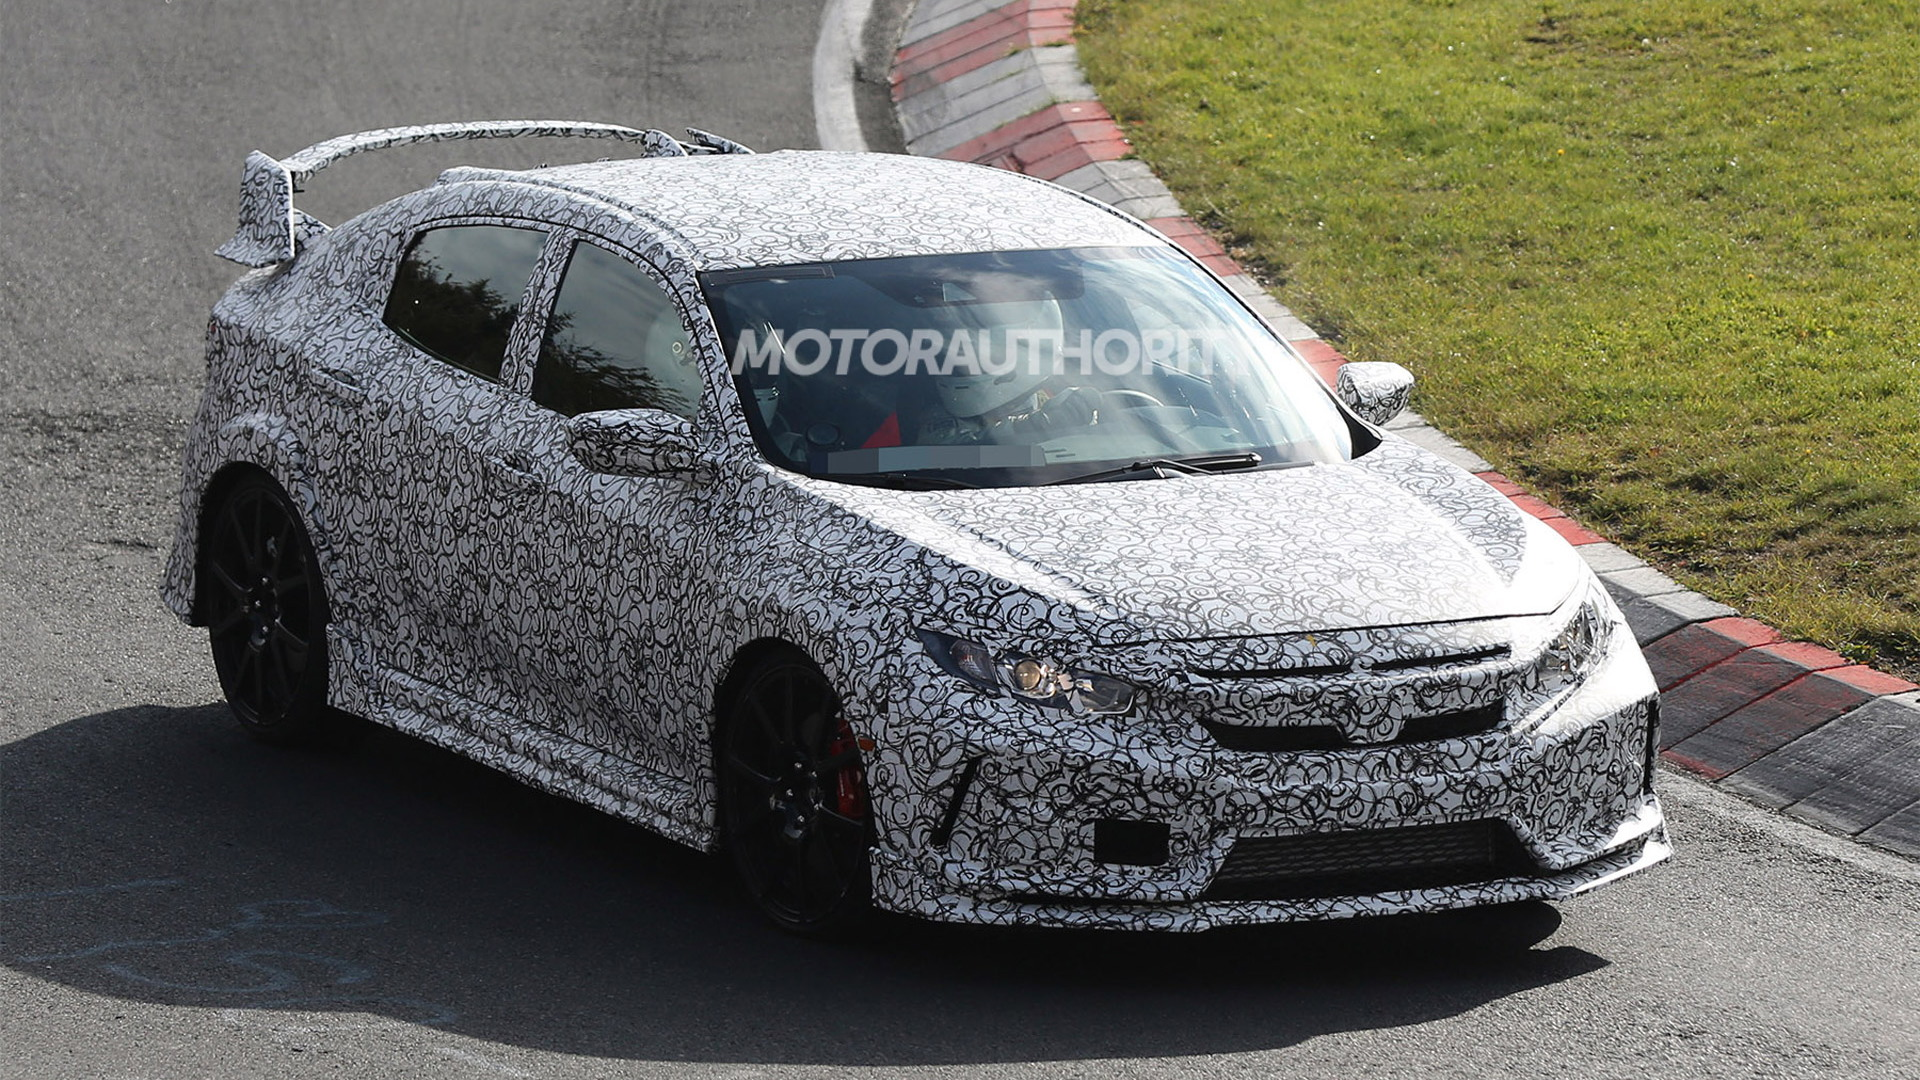 2018 Honda Civic Type R spy shots - Image via S. Baldauf/SB-Medien